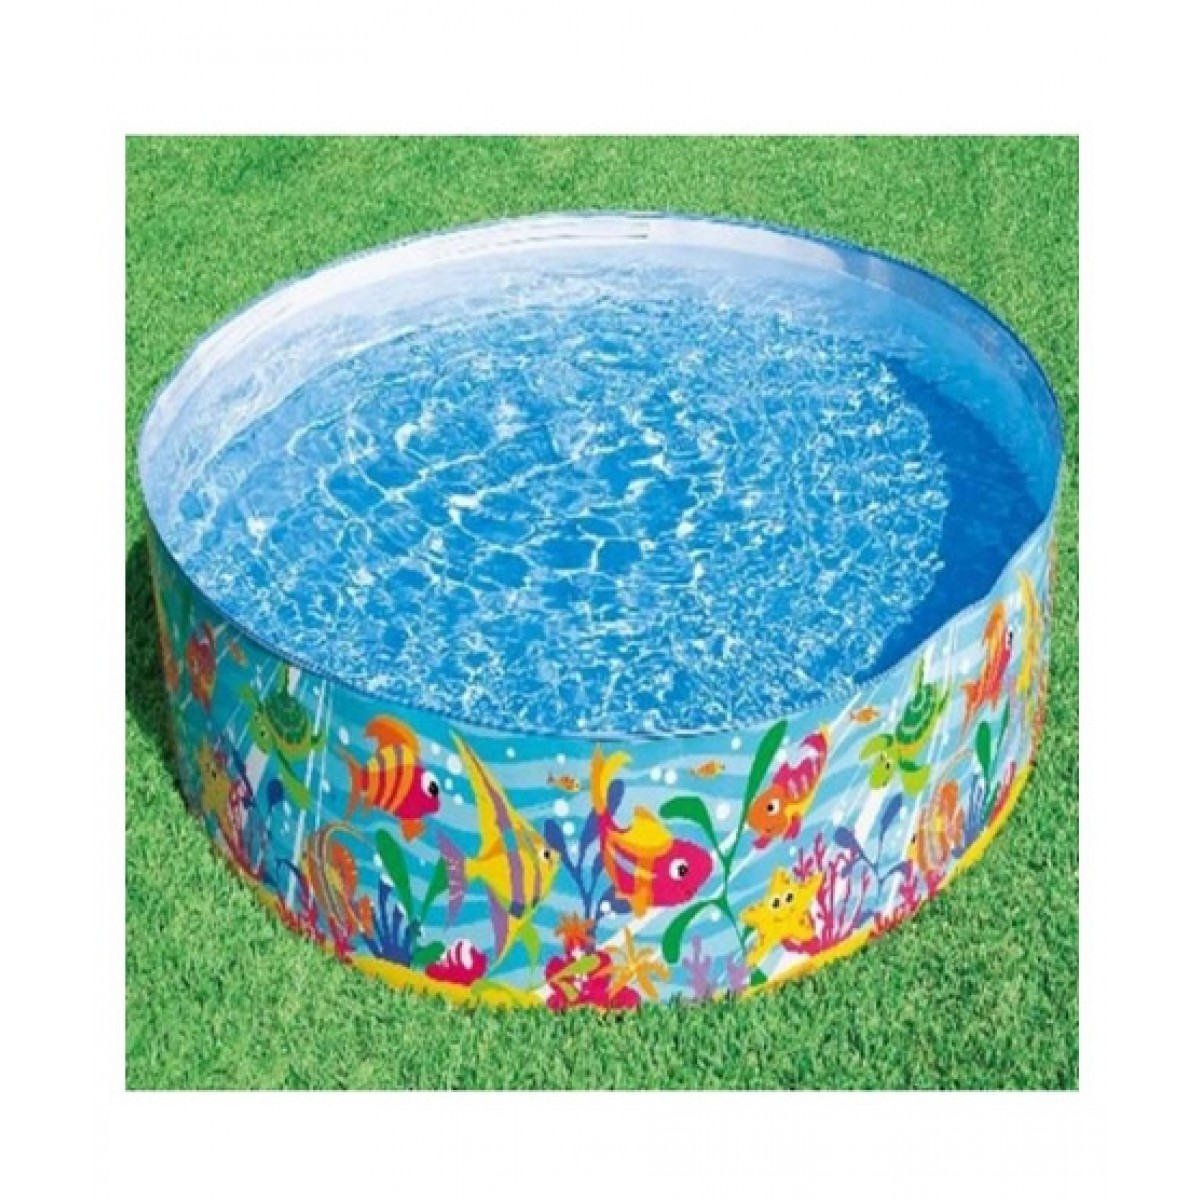 Intex Inflatable Large Swimming Pool - Multicolor (INTEX-56452)